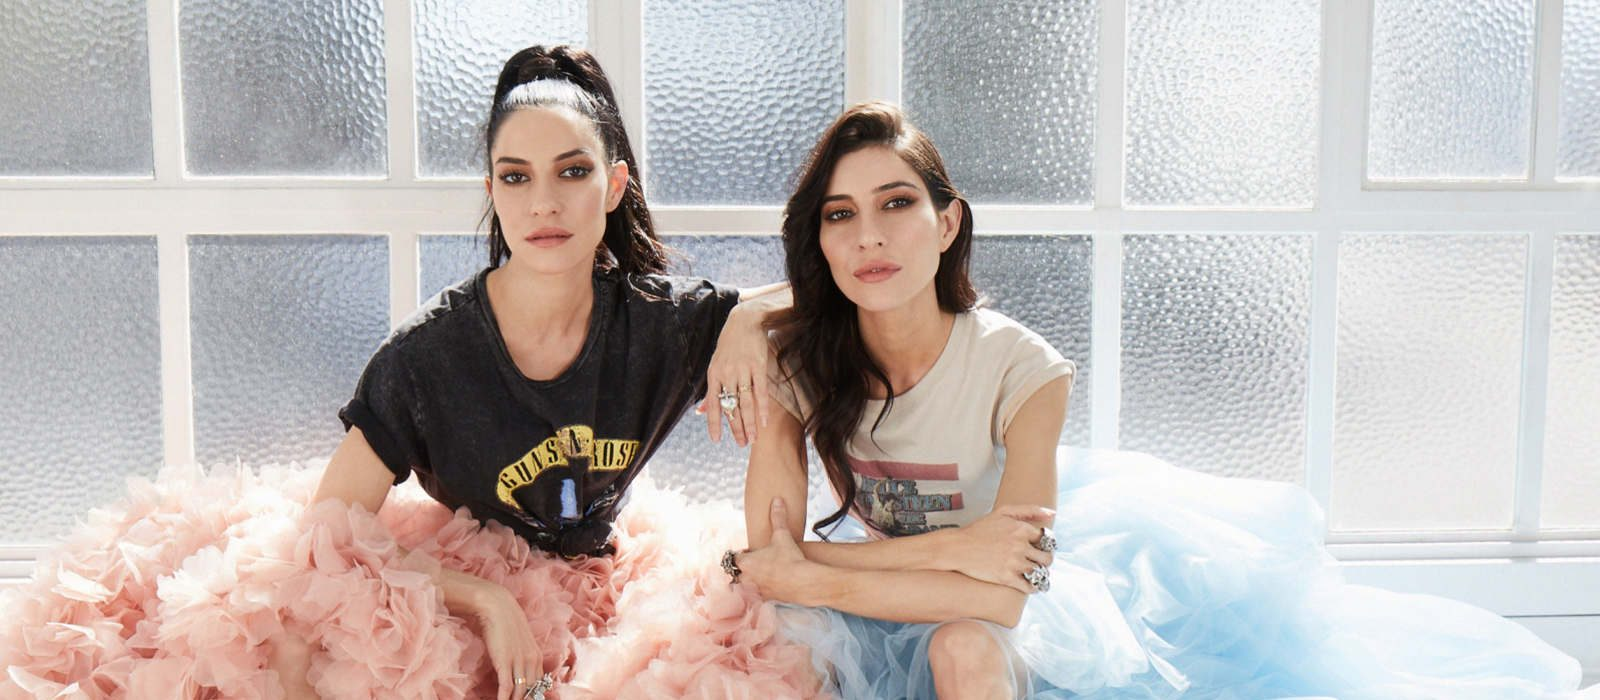 the veronicas ugly series mtv blood is for life lisa jessica origliasso